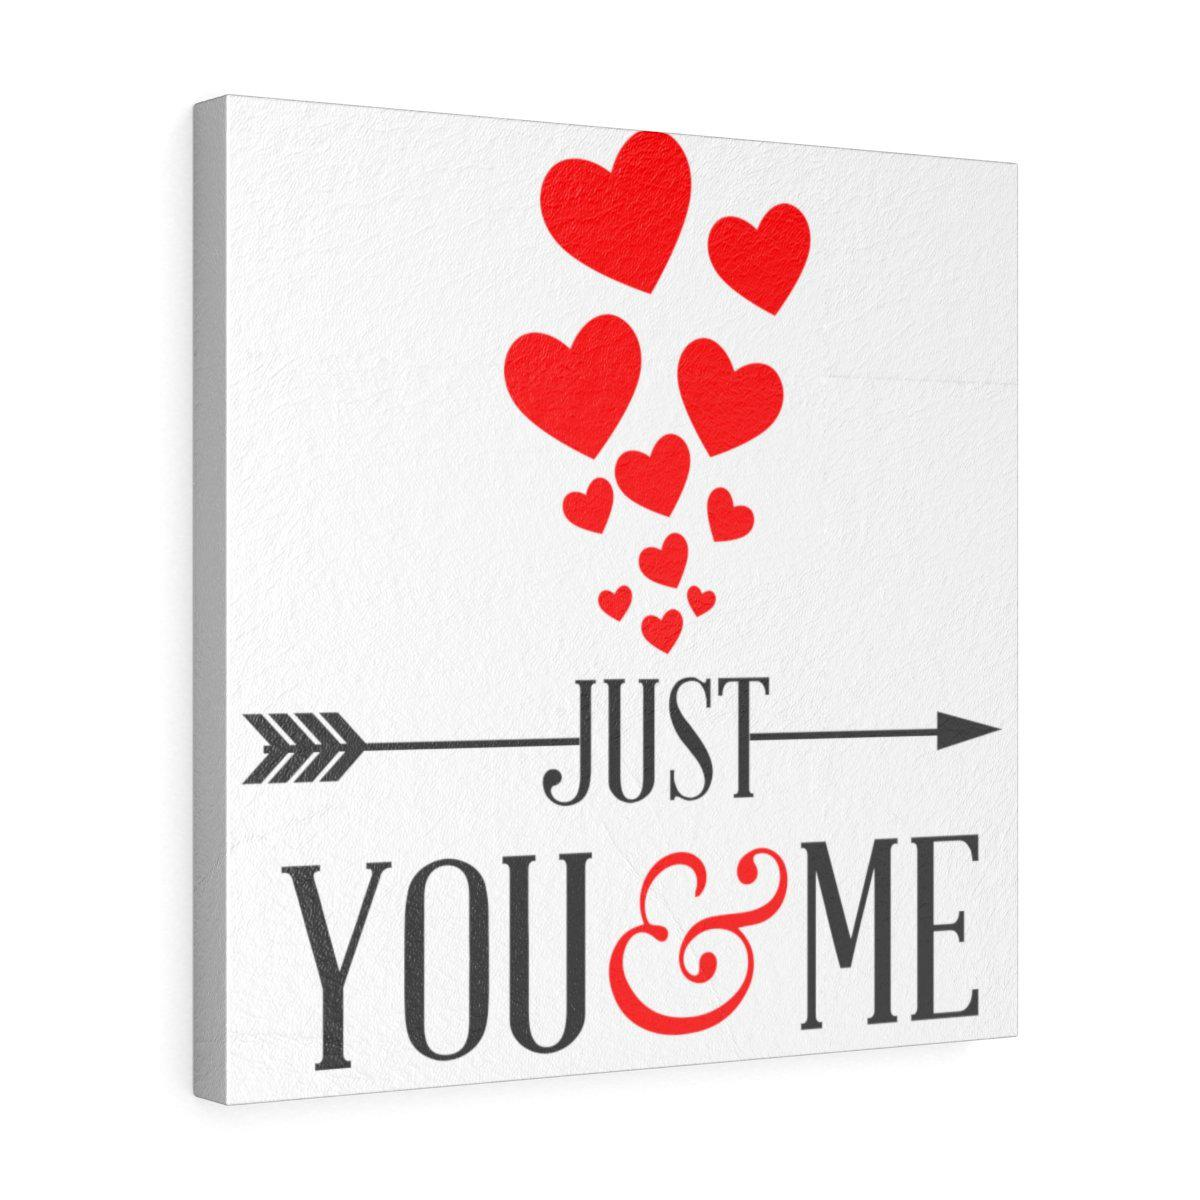 You and me love letters letter Square Leather Gallery Wraps Print-Home - Wall Arts & Decors - Prints & Posters-Maison d'Elite-16″ × 16″-Très Elite